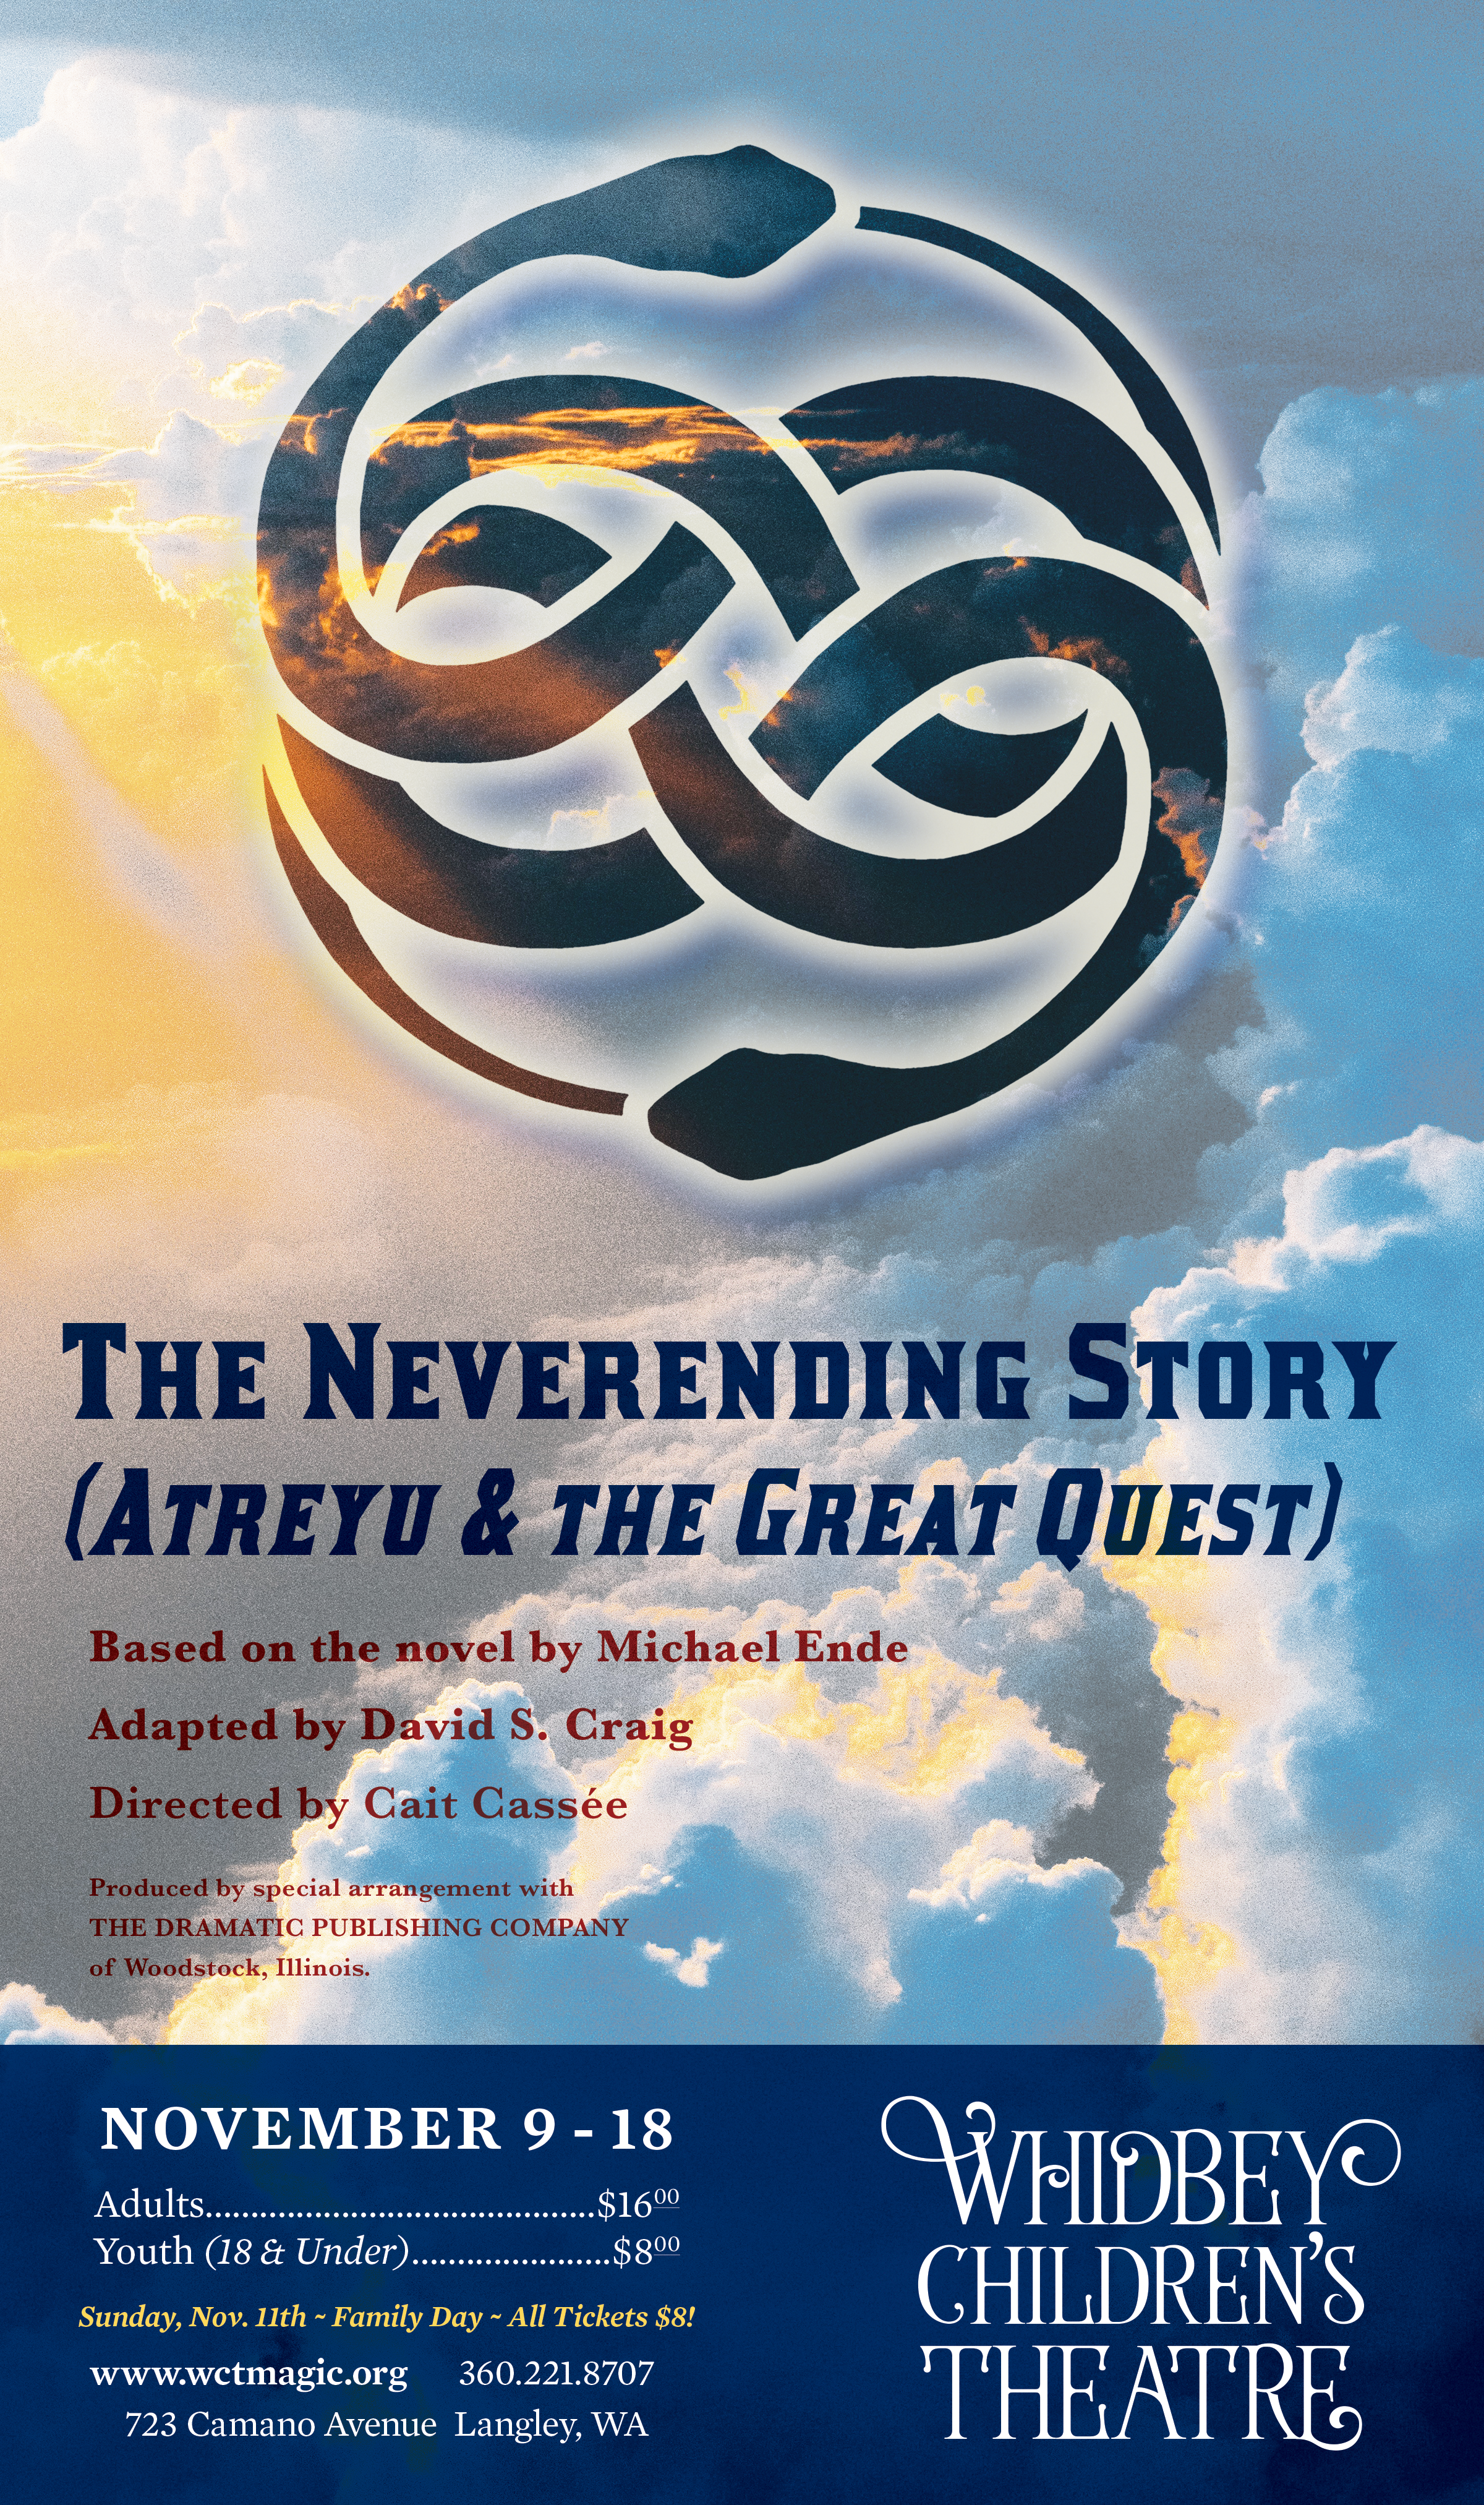 The-Neverending-Story-Atrey-and-the-Great-Quest-Whidbey-Childrens-Theatre